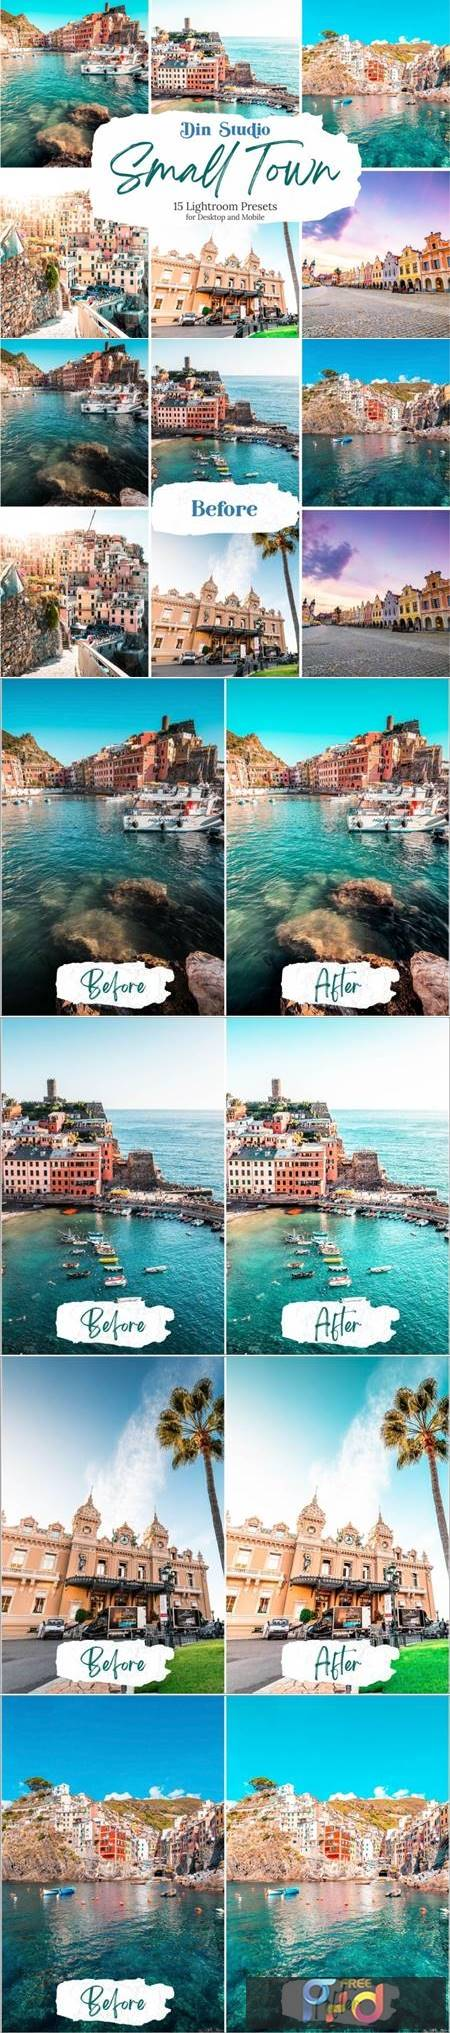 Small Town Lightroom Presets 5555337 1